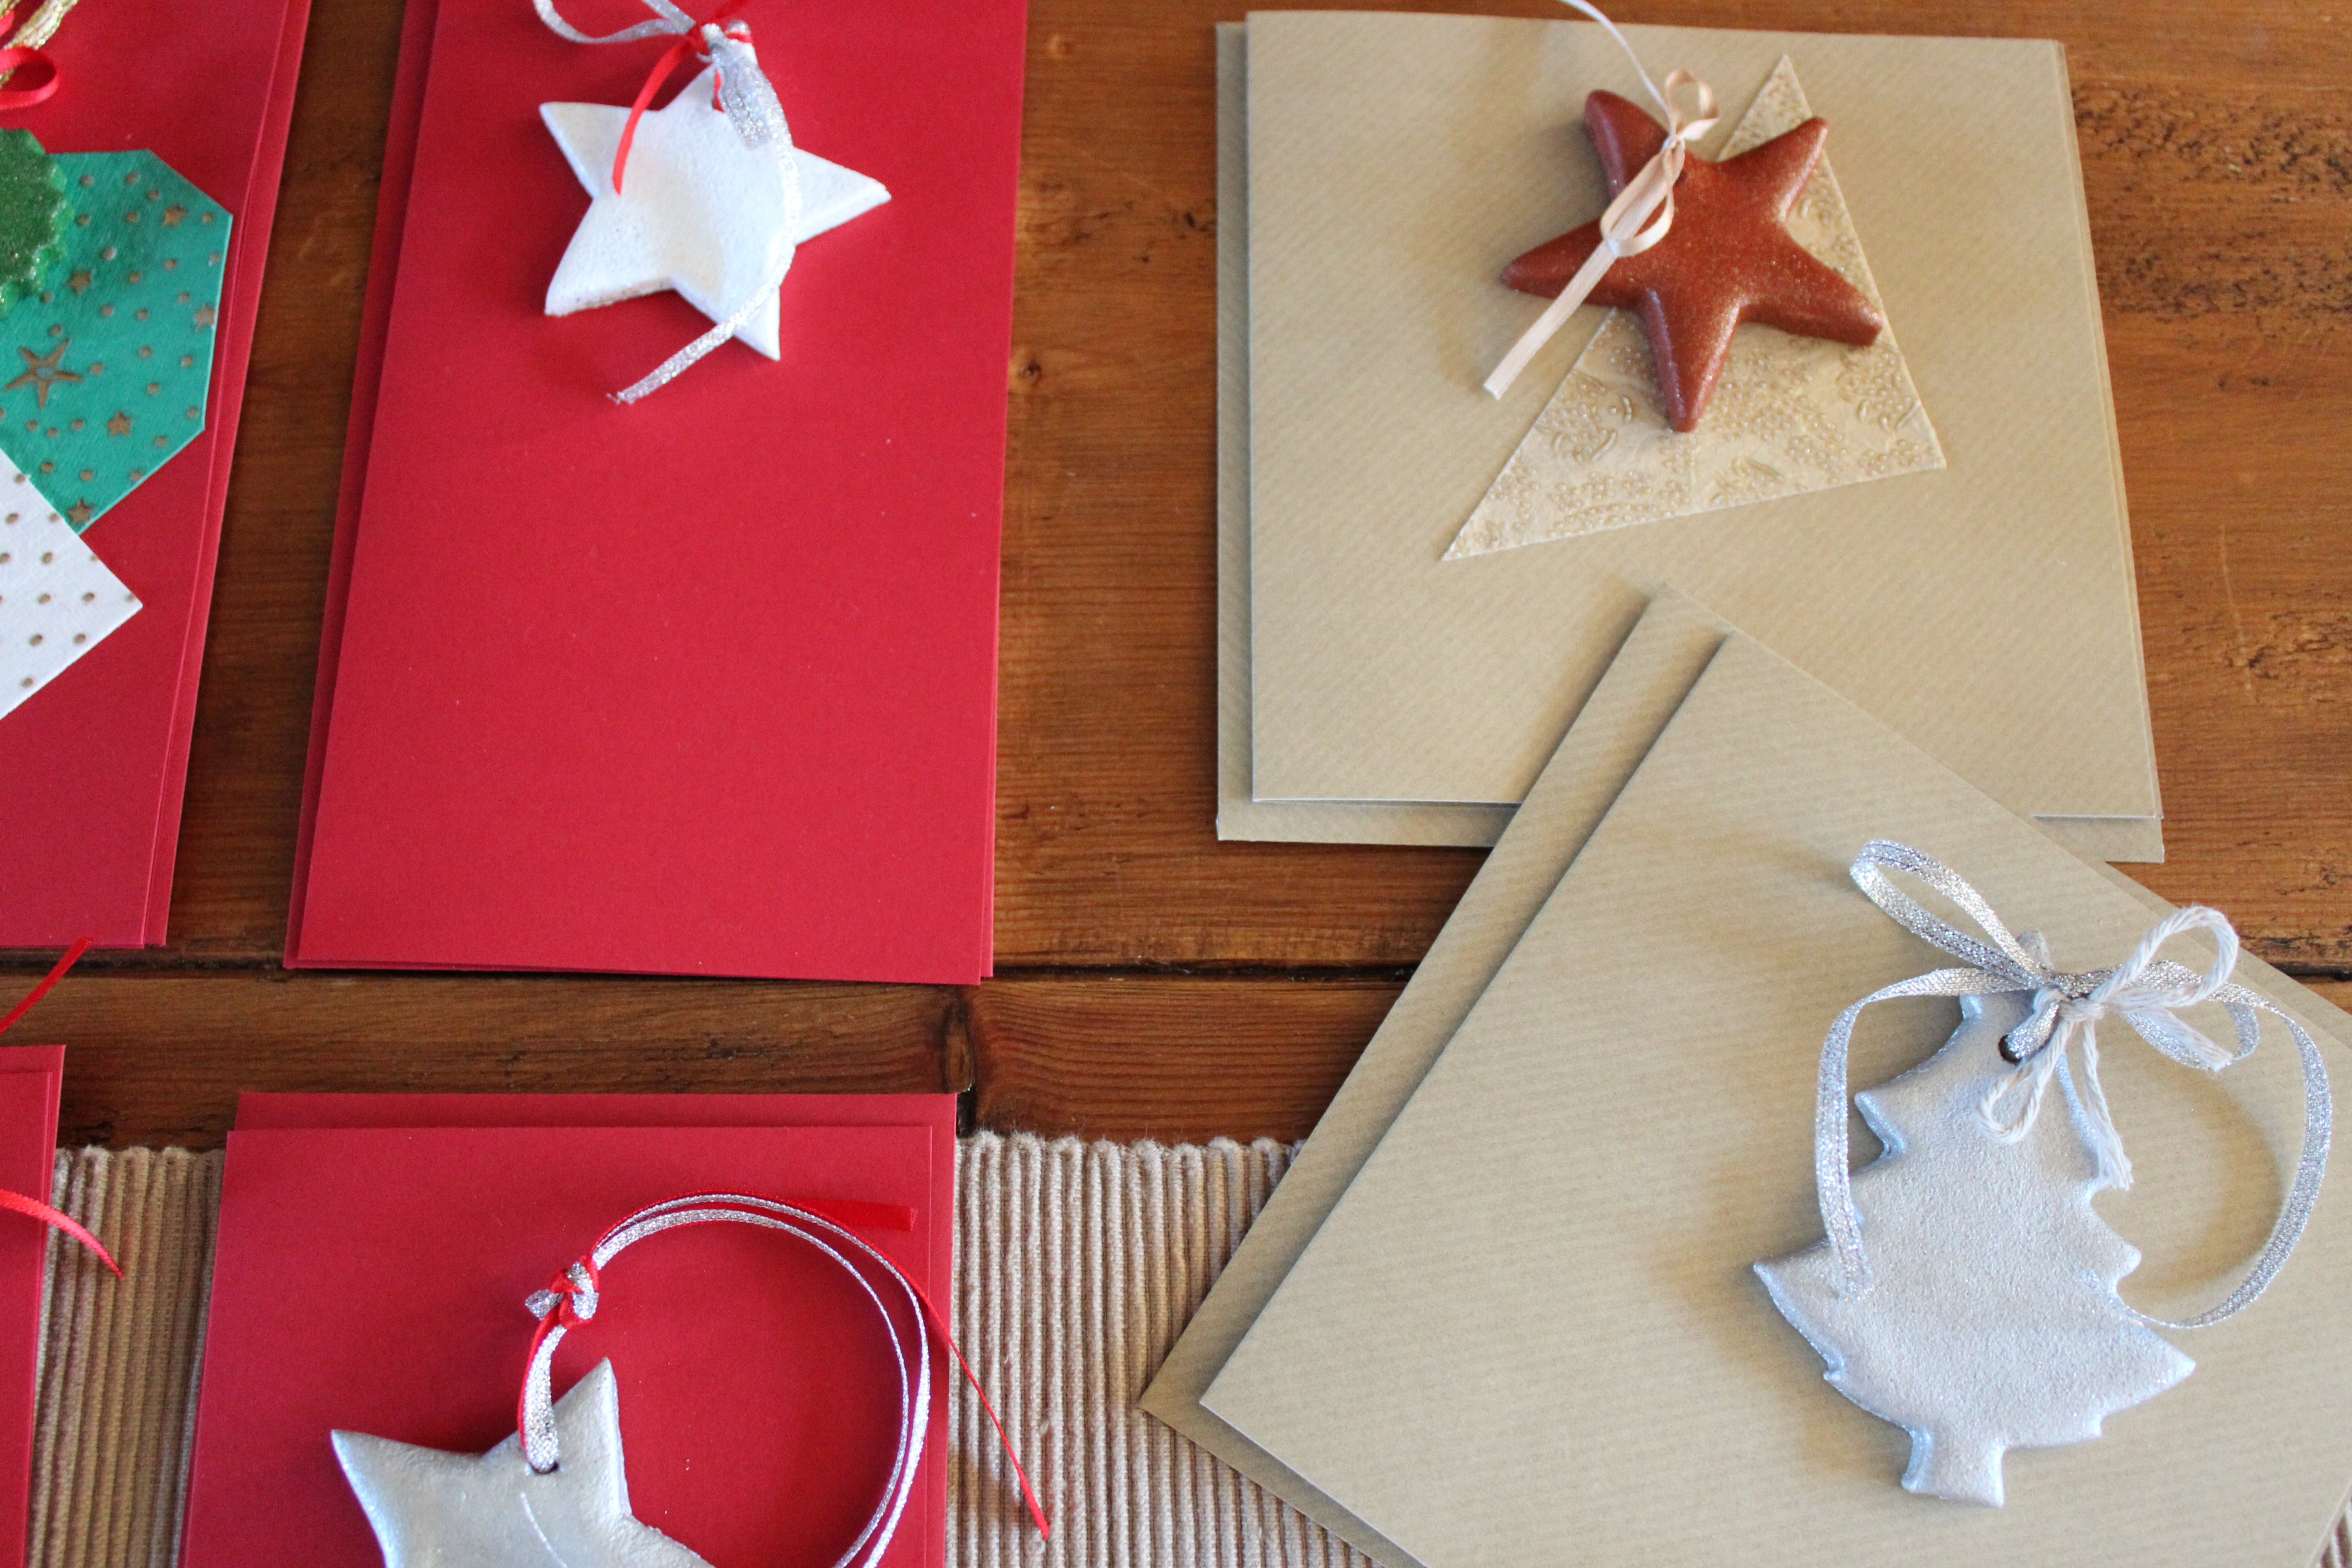 How i wish a merry christmas were talking greeting cards time consuming due to the cards being made but weighed up against writing out lots of bog standard mass produced shop bought cards and posting them kristyandbryce Images